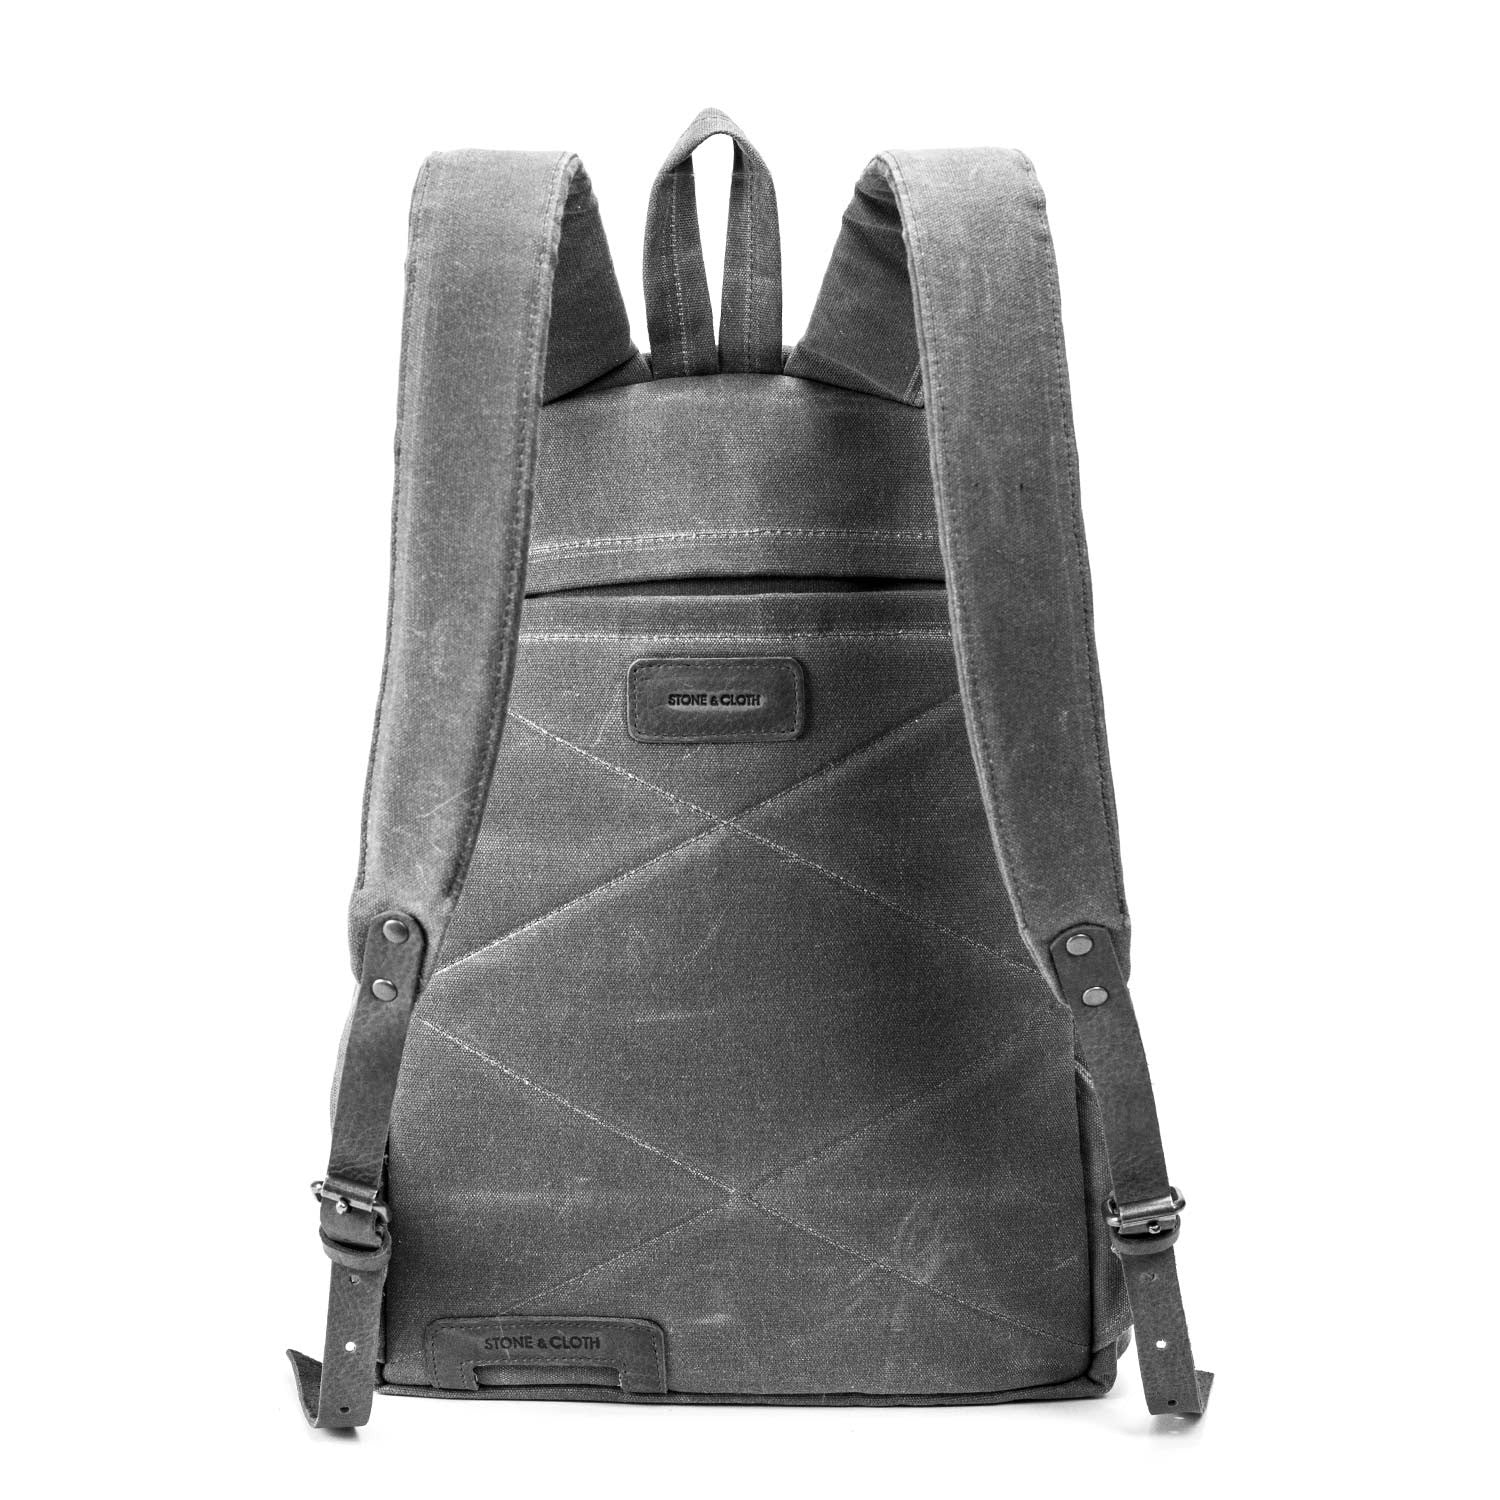 d827983102 Berchirly Vintage Men Casual Canvas Leather Backpack Rucksack ... Berchirly  Vintage Men Casual Canvas Leather Backpack Rucksack Bookbag Satchel ...